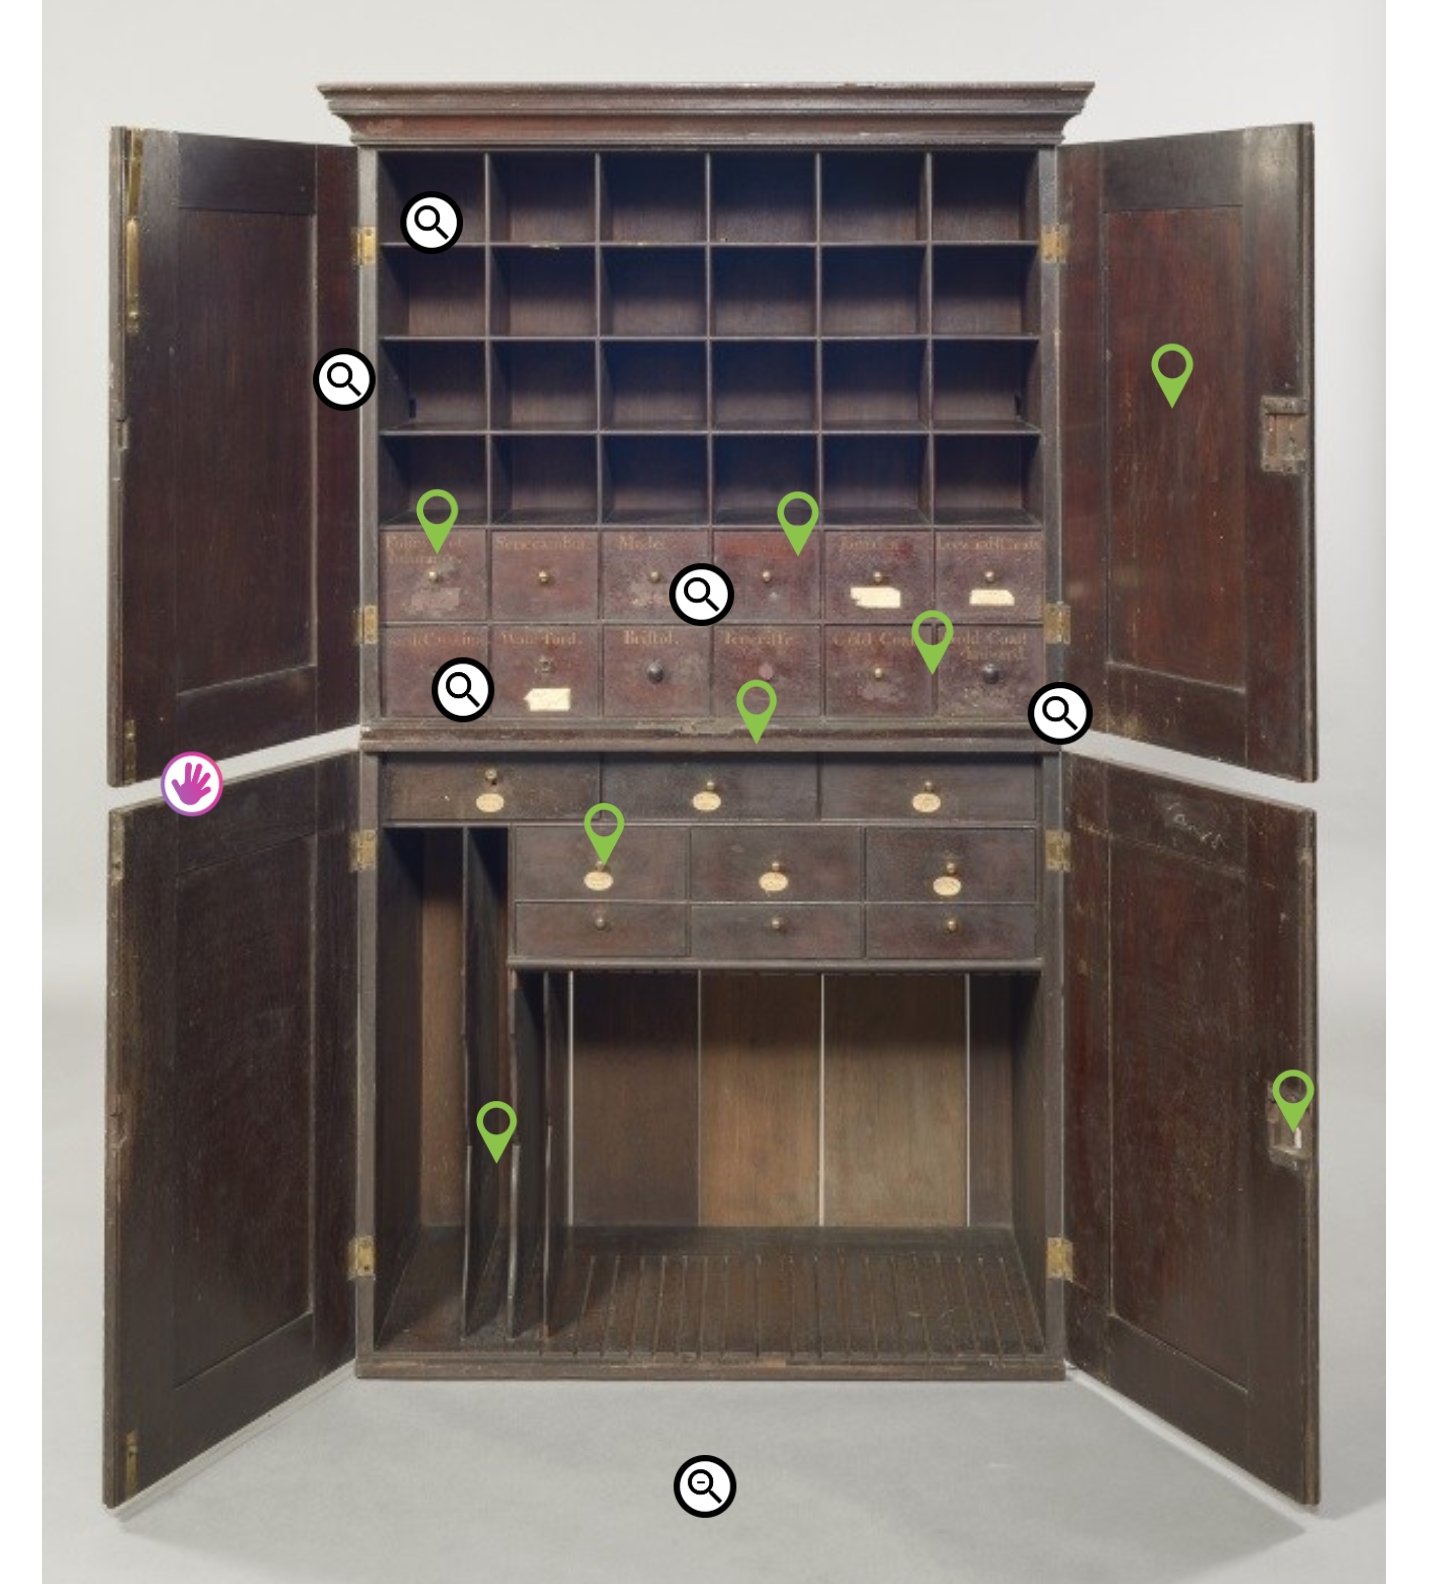 The home screen for the digital interactive features a still image of the mahogany double cabinet, with the doors open, and various points marked with symbols for guests to touch and learn more.